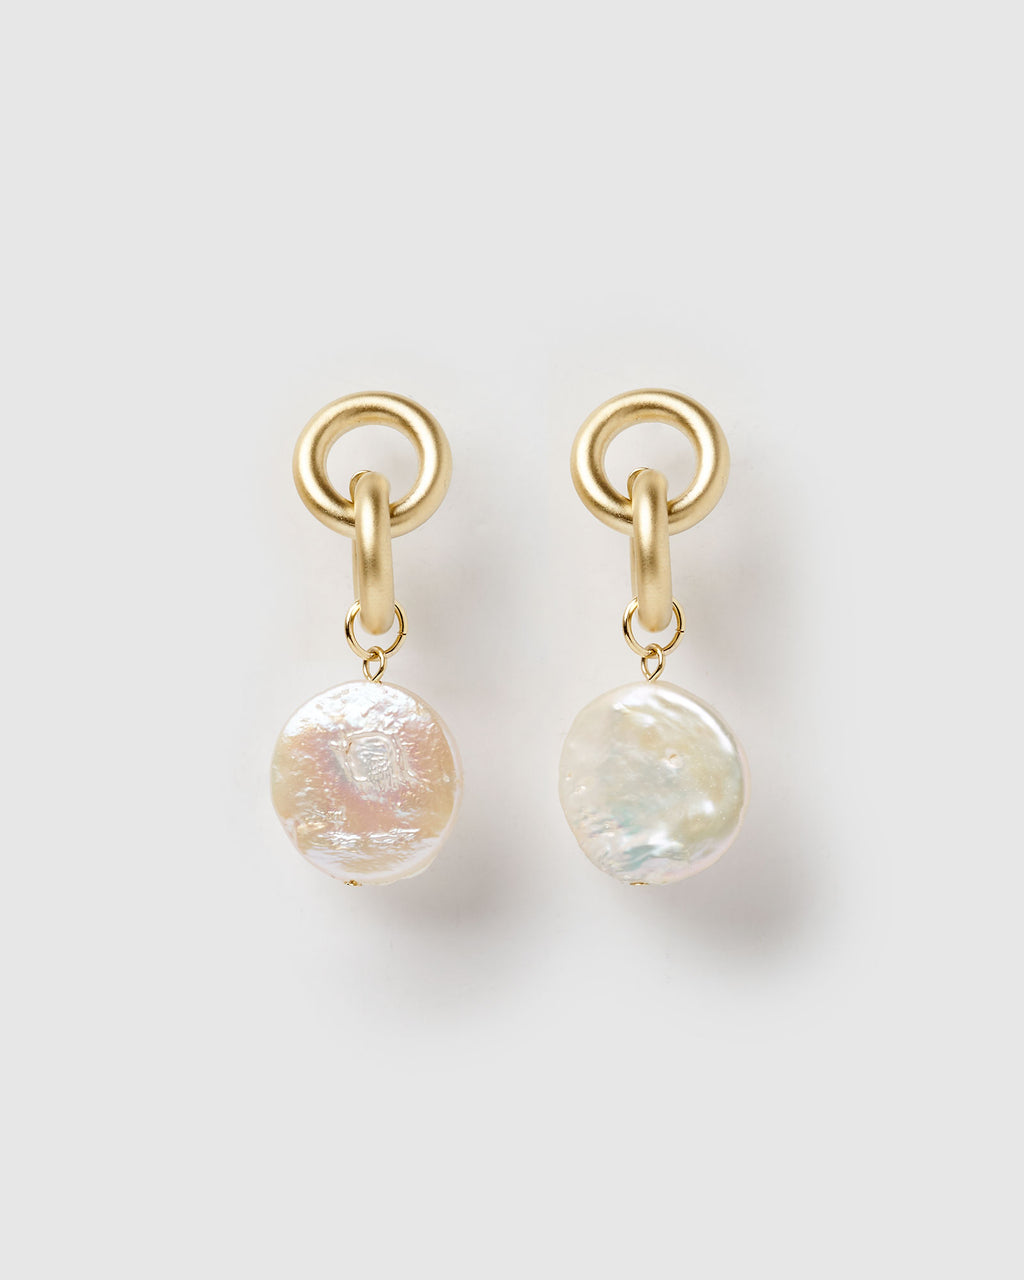 Izoa Juno Earrings Gold Freshwater Pearl